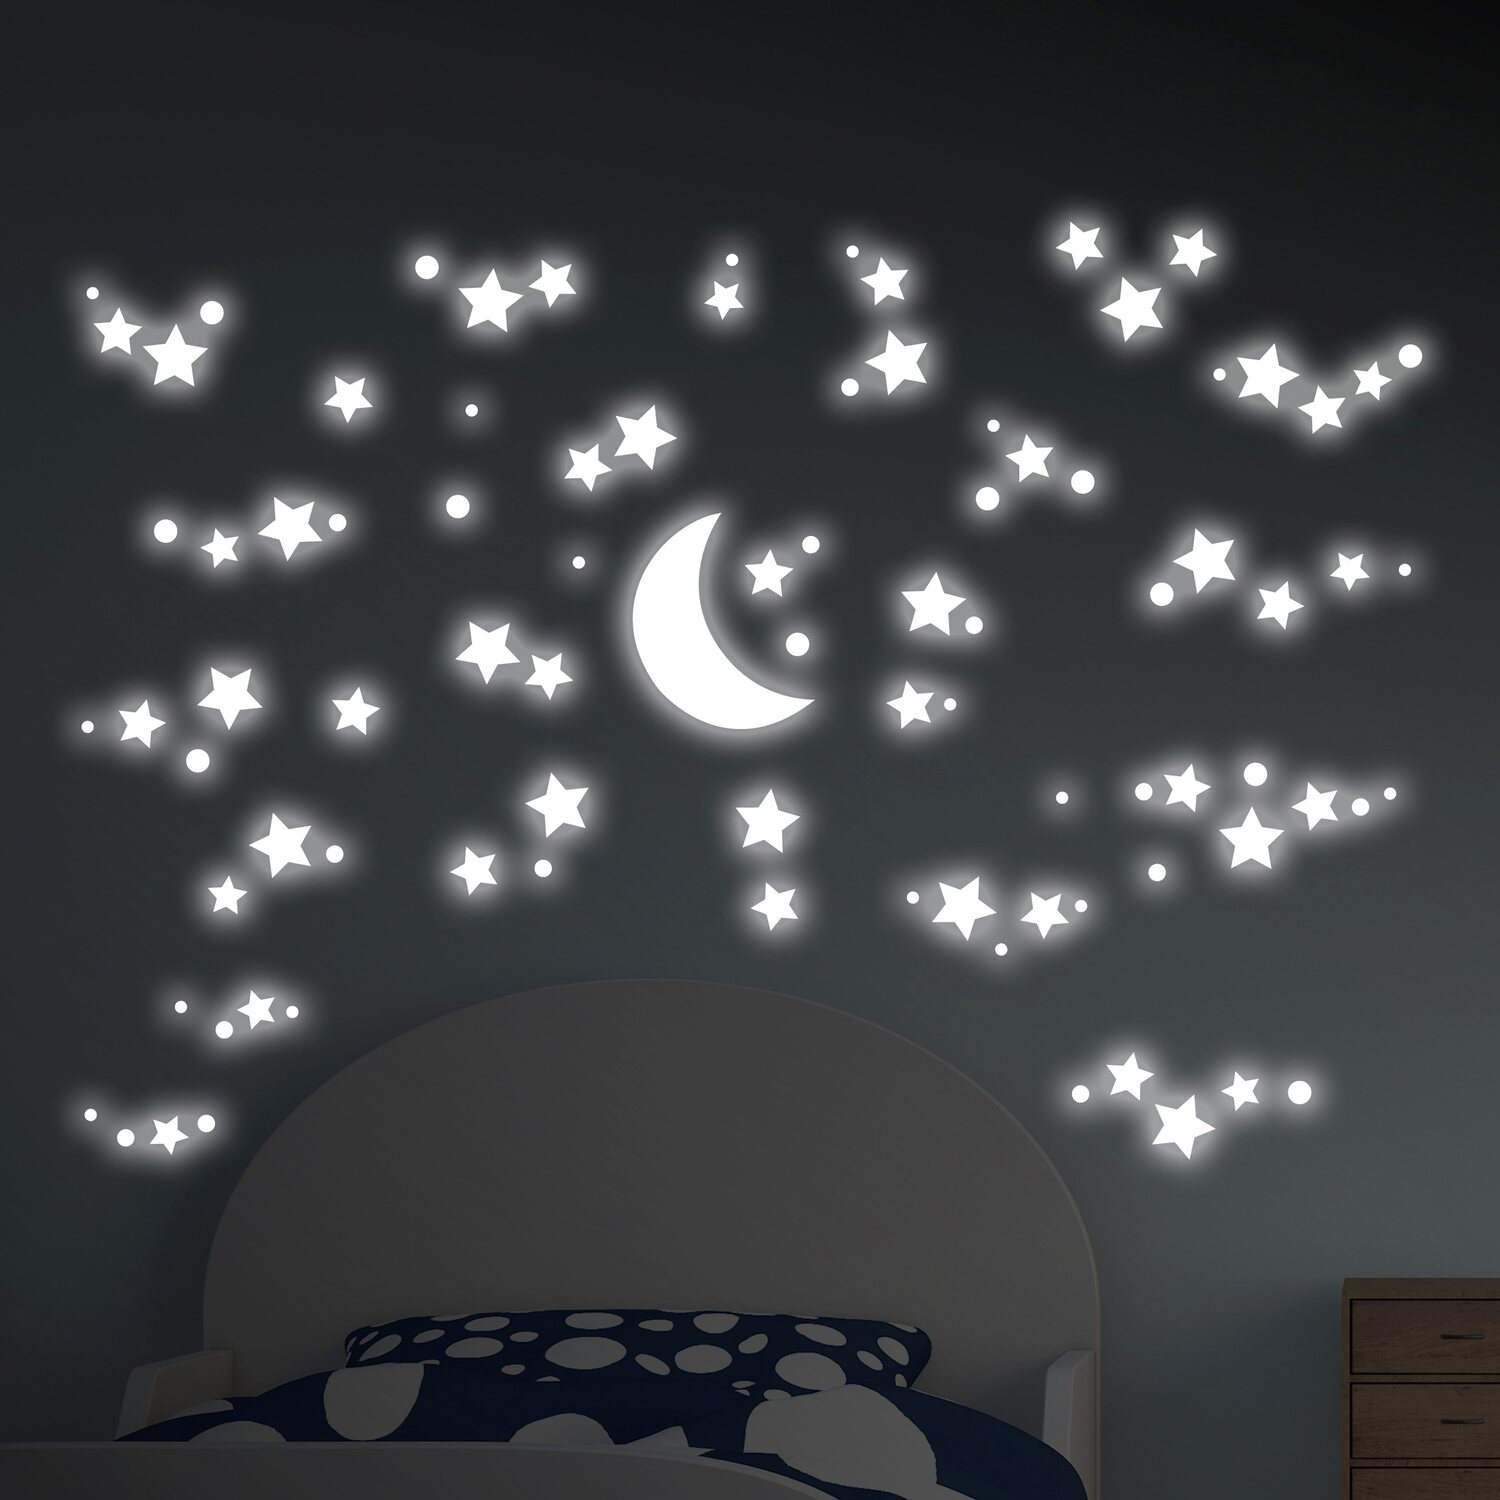 Decorazioni Adesive Per Parete Fosforescenti Starry Night Acquista